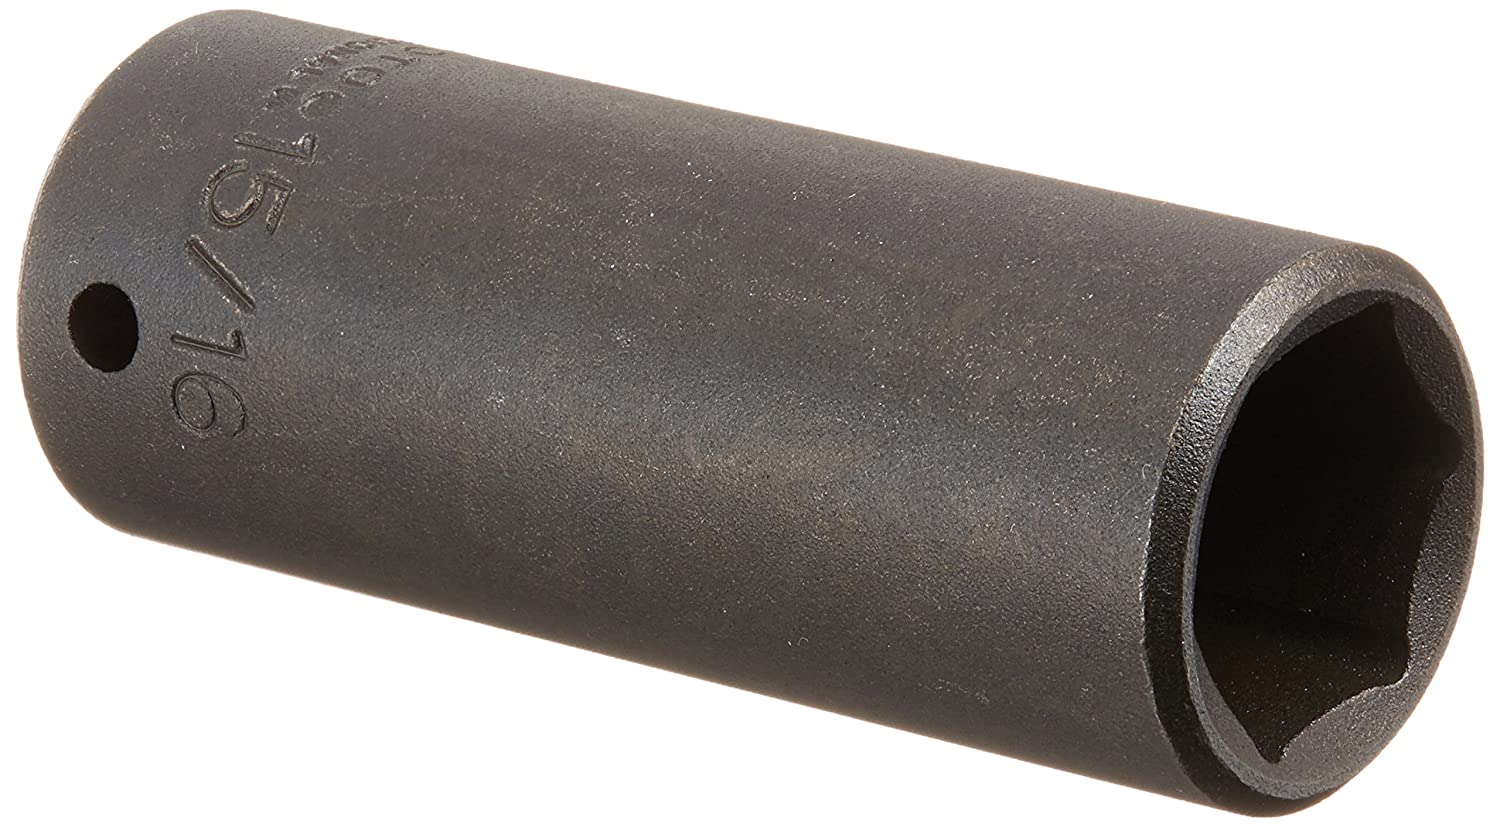 Stanley J7330H Proto 6 Point 1/2-Inch Drive Impact Socket, 15/16-Inch Stanley Proto J7330H 6 Point 1/2 Drive Impact Socket 15/16